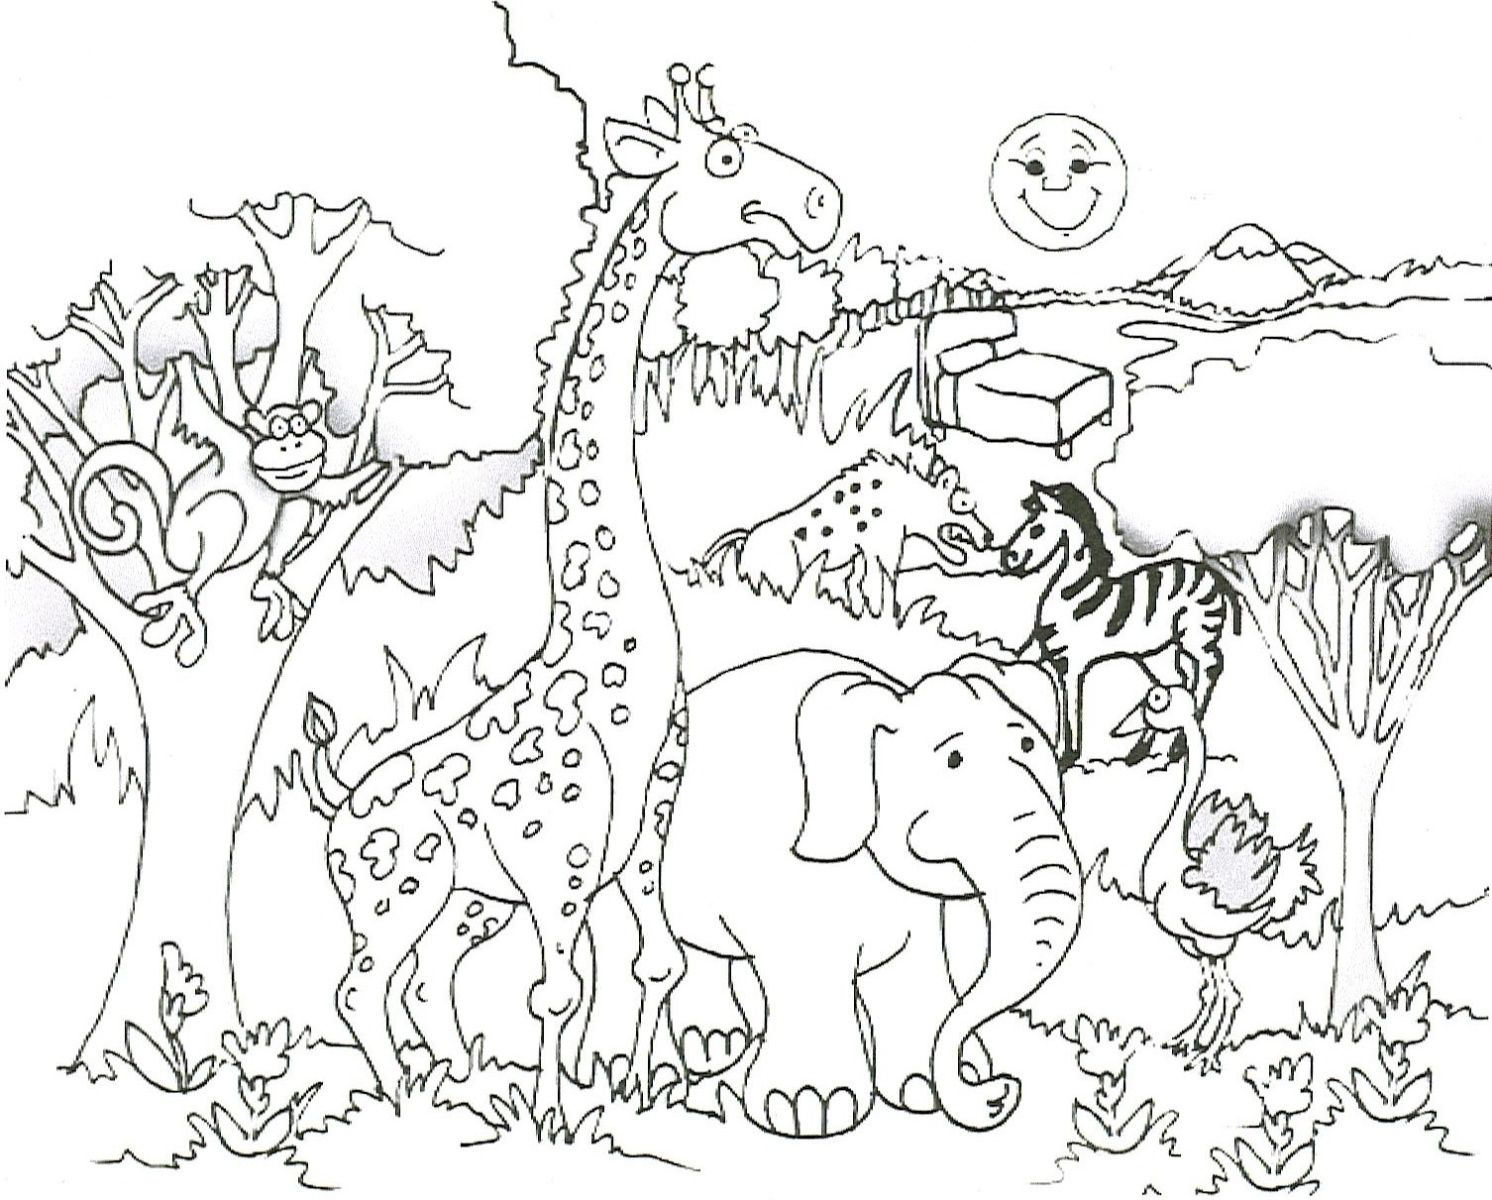 savanna trees coloring pages - photo#17